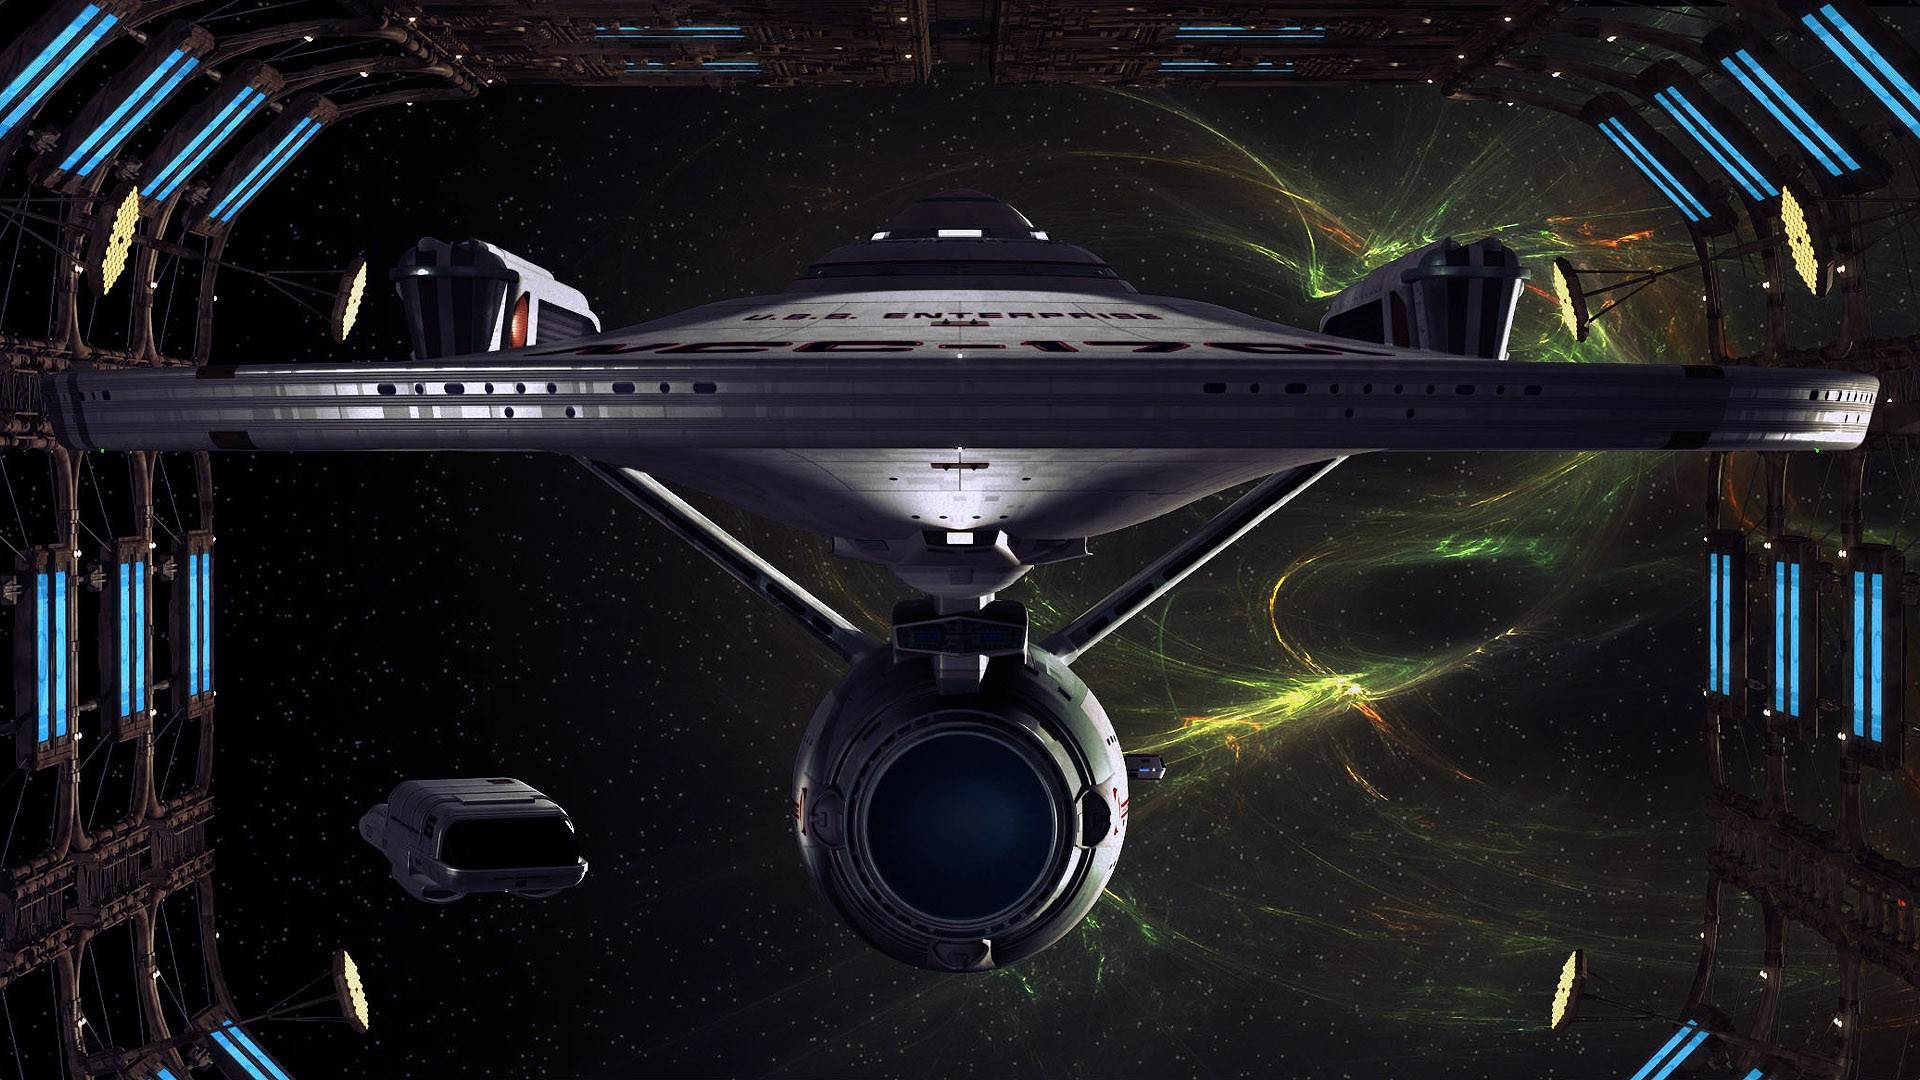 Uss Enterprise Star Trek wallpapers